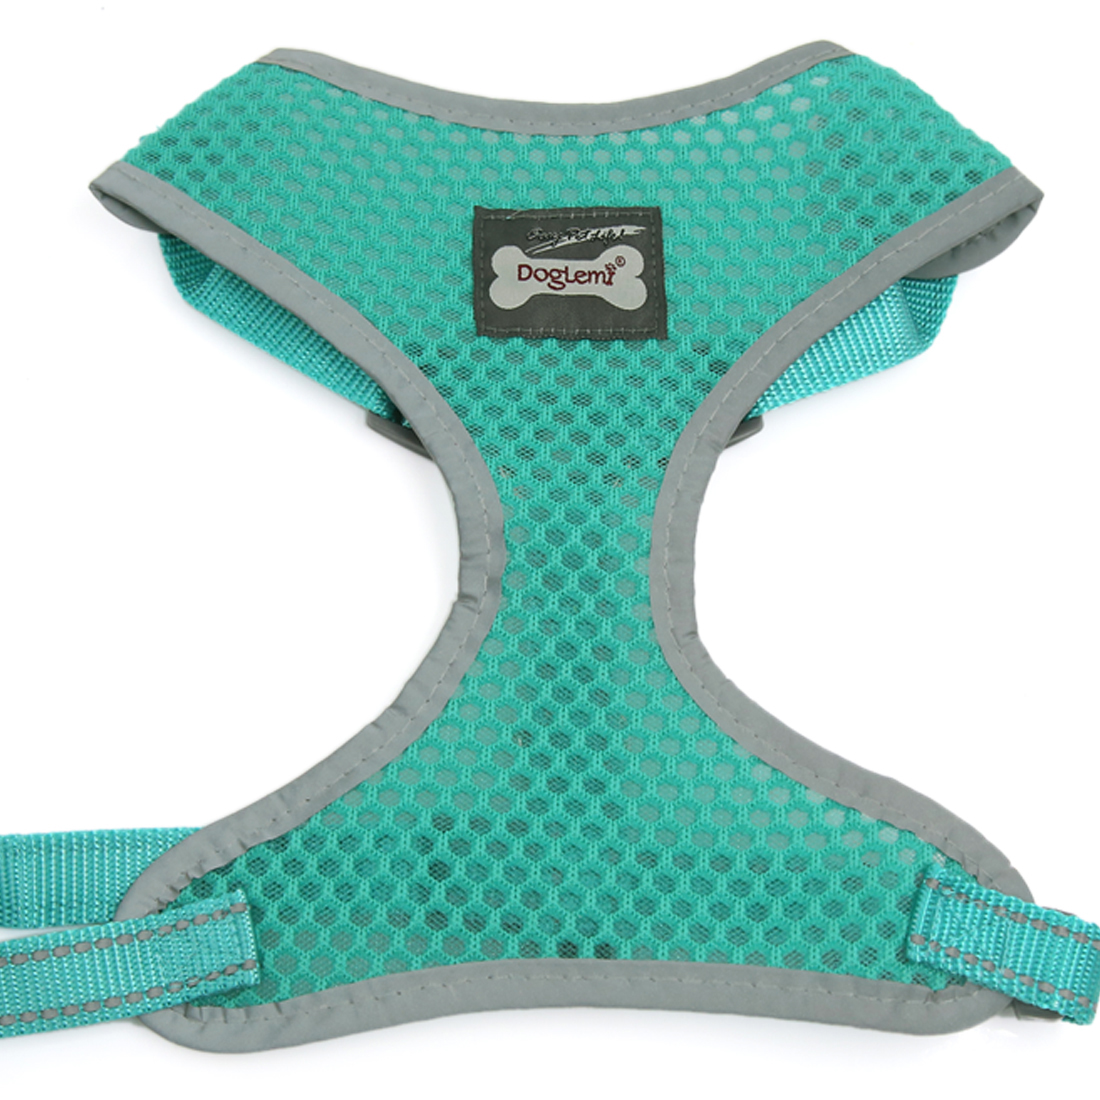 Comfort Control Dog Harness Adjustable Breathable Soft Air Mesh Puppy Harnesses Walk Collar Reflective Vest Green XL